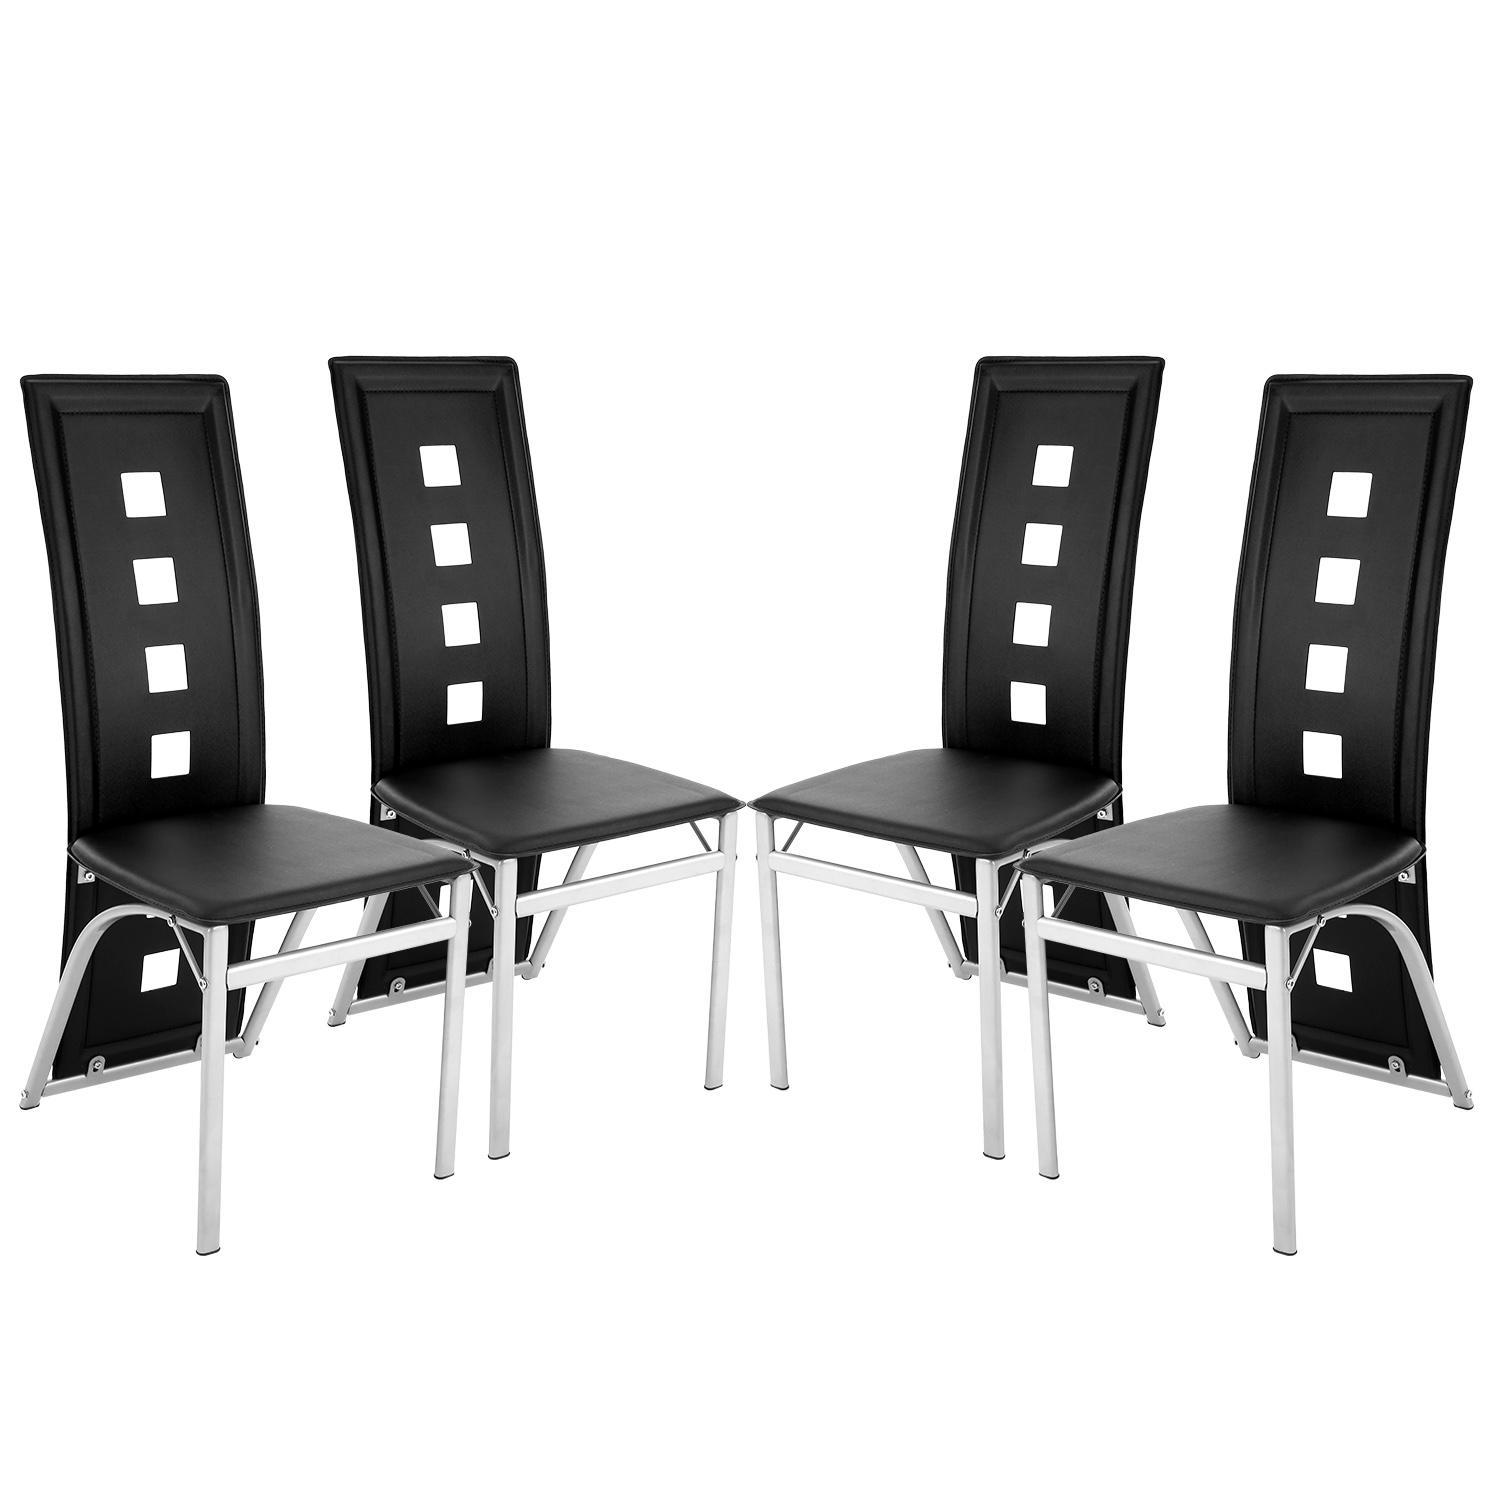 Set of 4 Modern Dining Chair, High Back Chair for Home Kitchen Restaurant Black SPTE